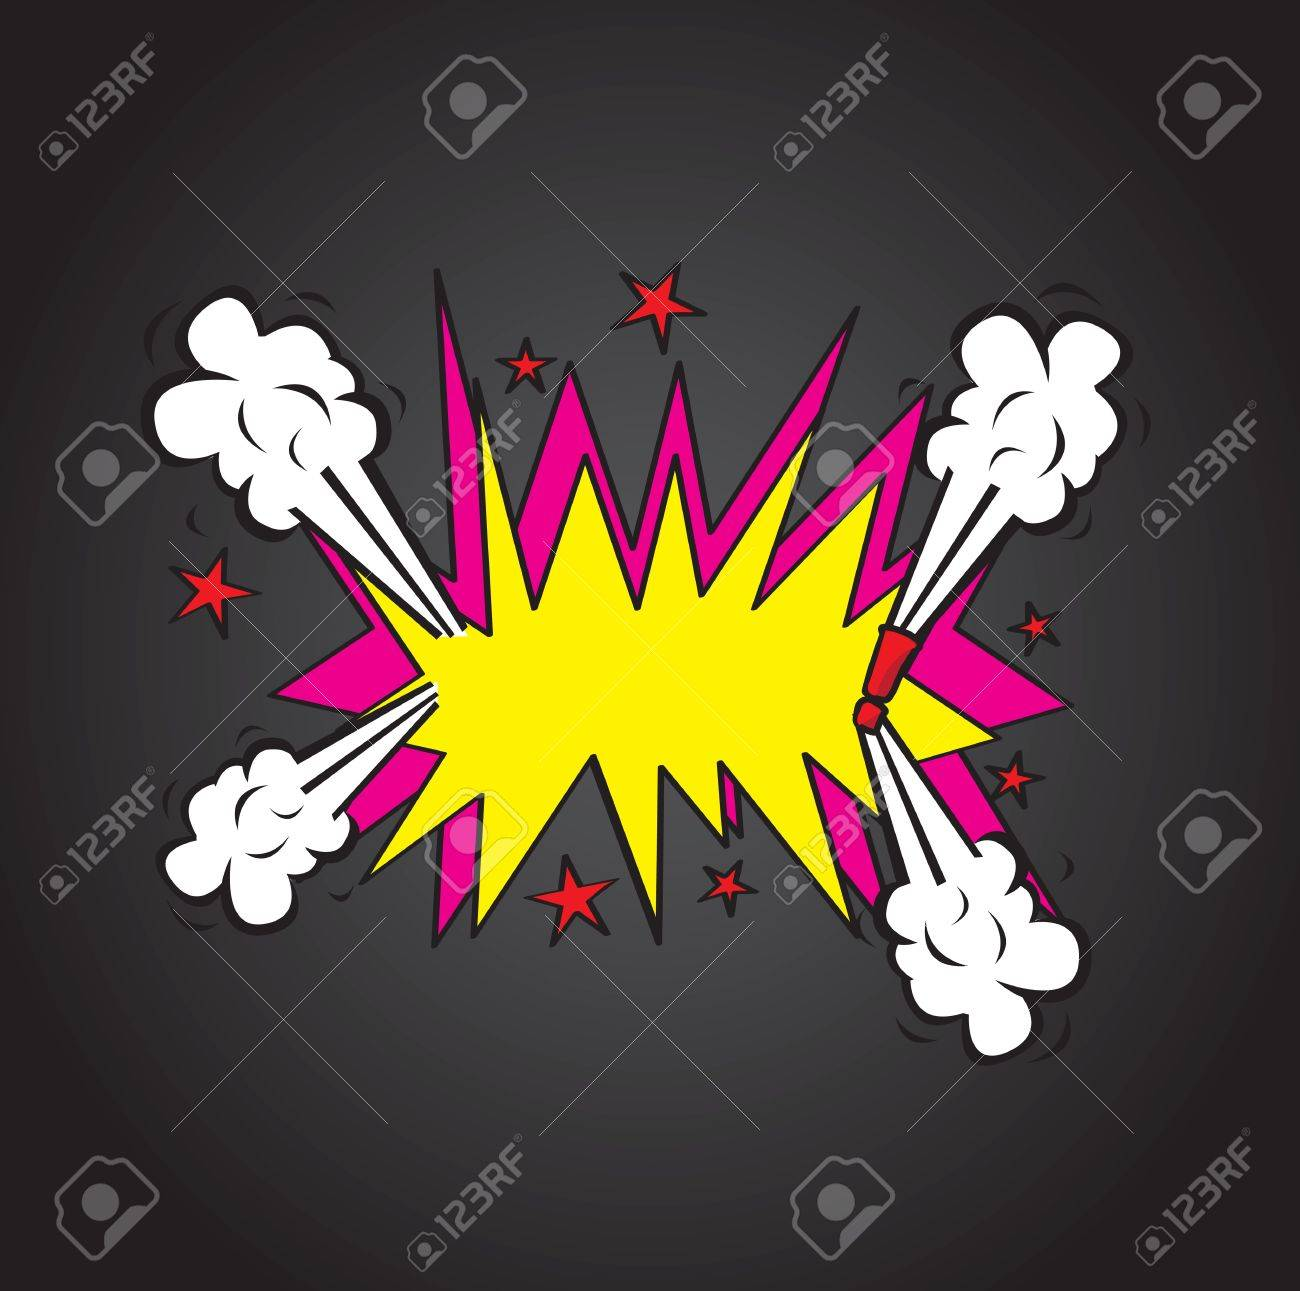 Explosion comic cloud over  black background vector illustration Stock Vector - 17349158